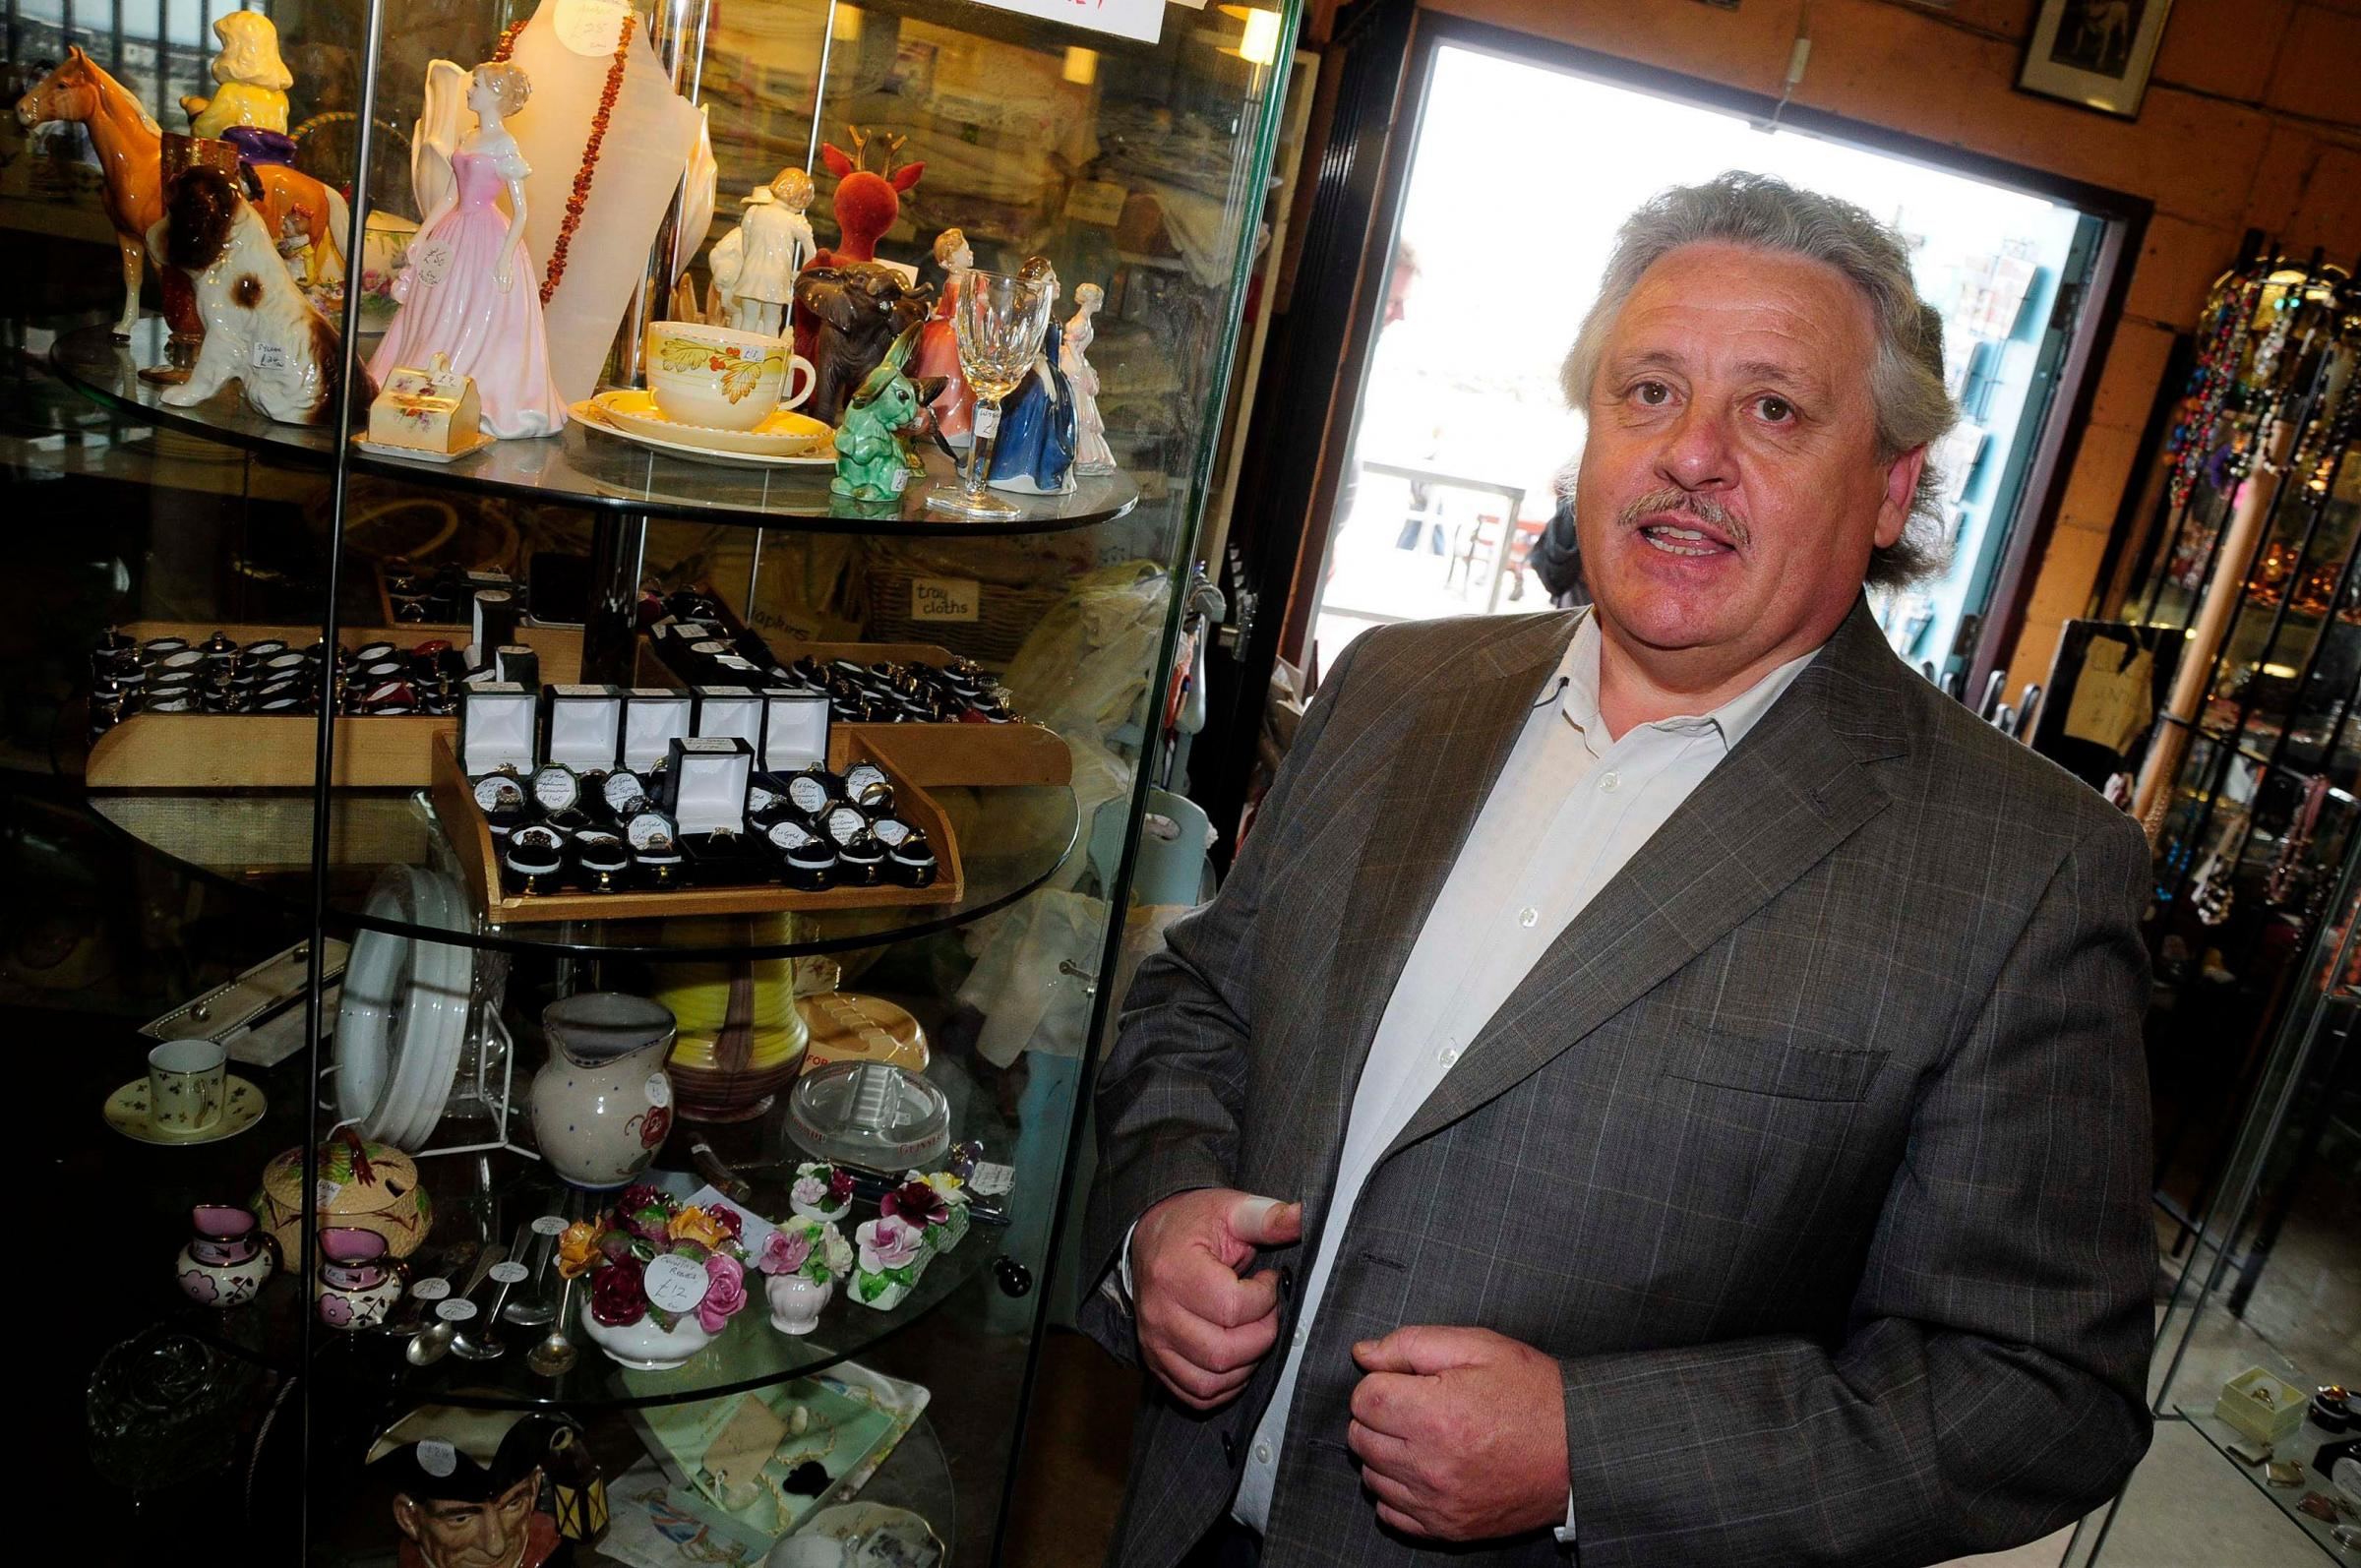 Have-a-go-hero halts Lyme Regis jewellery theft